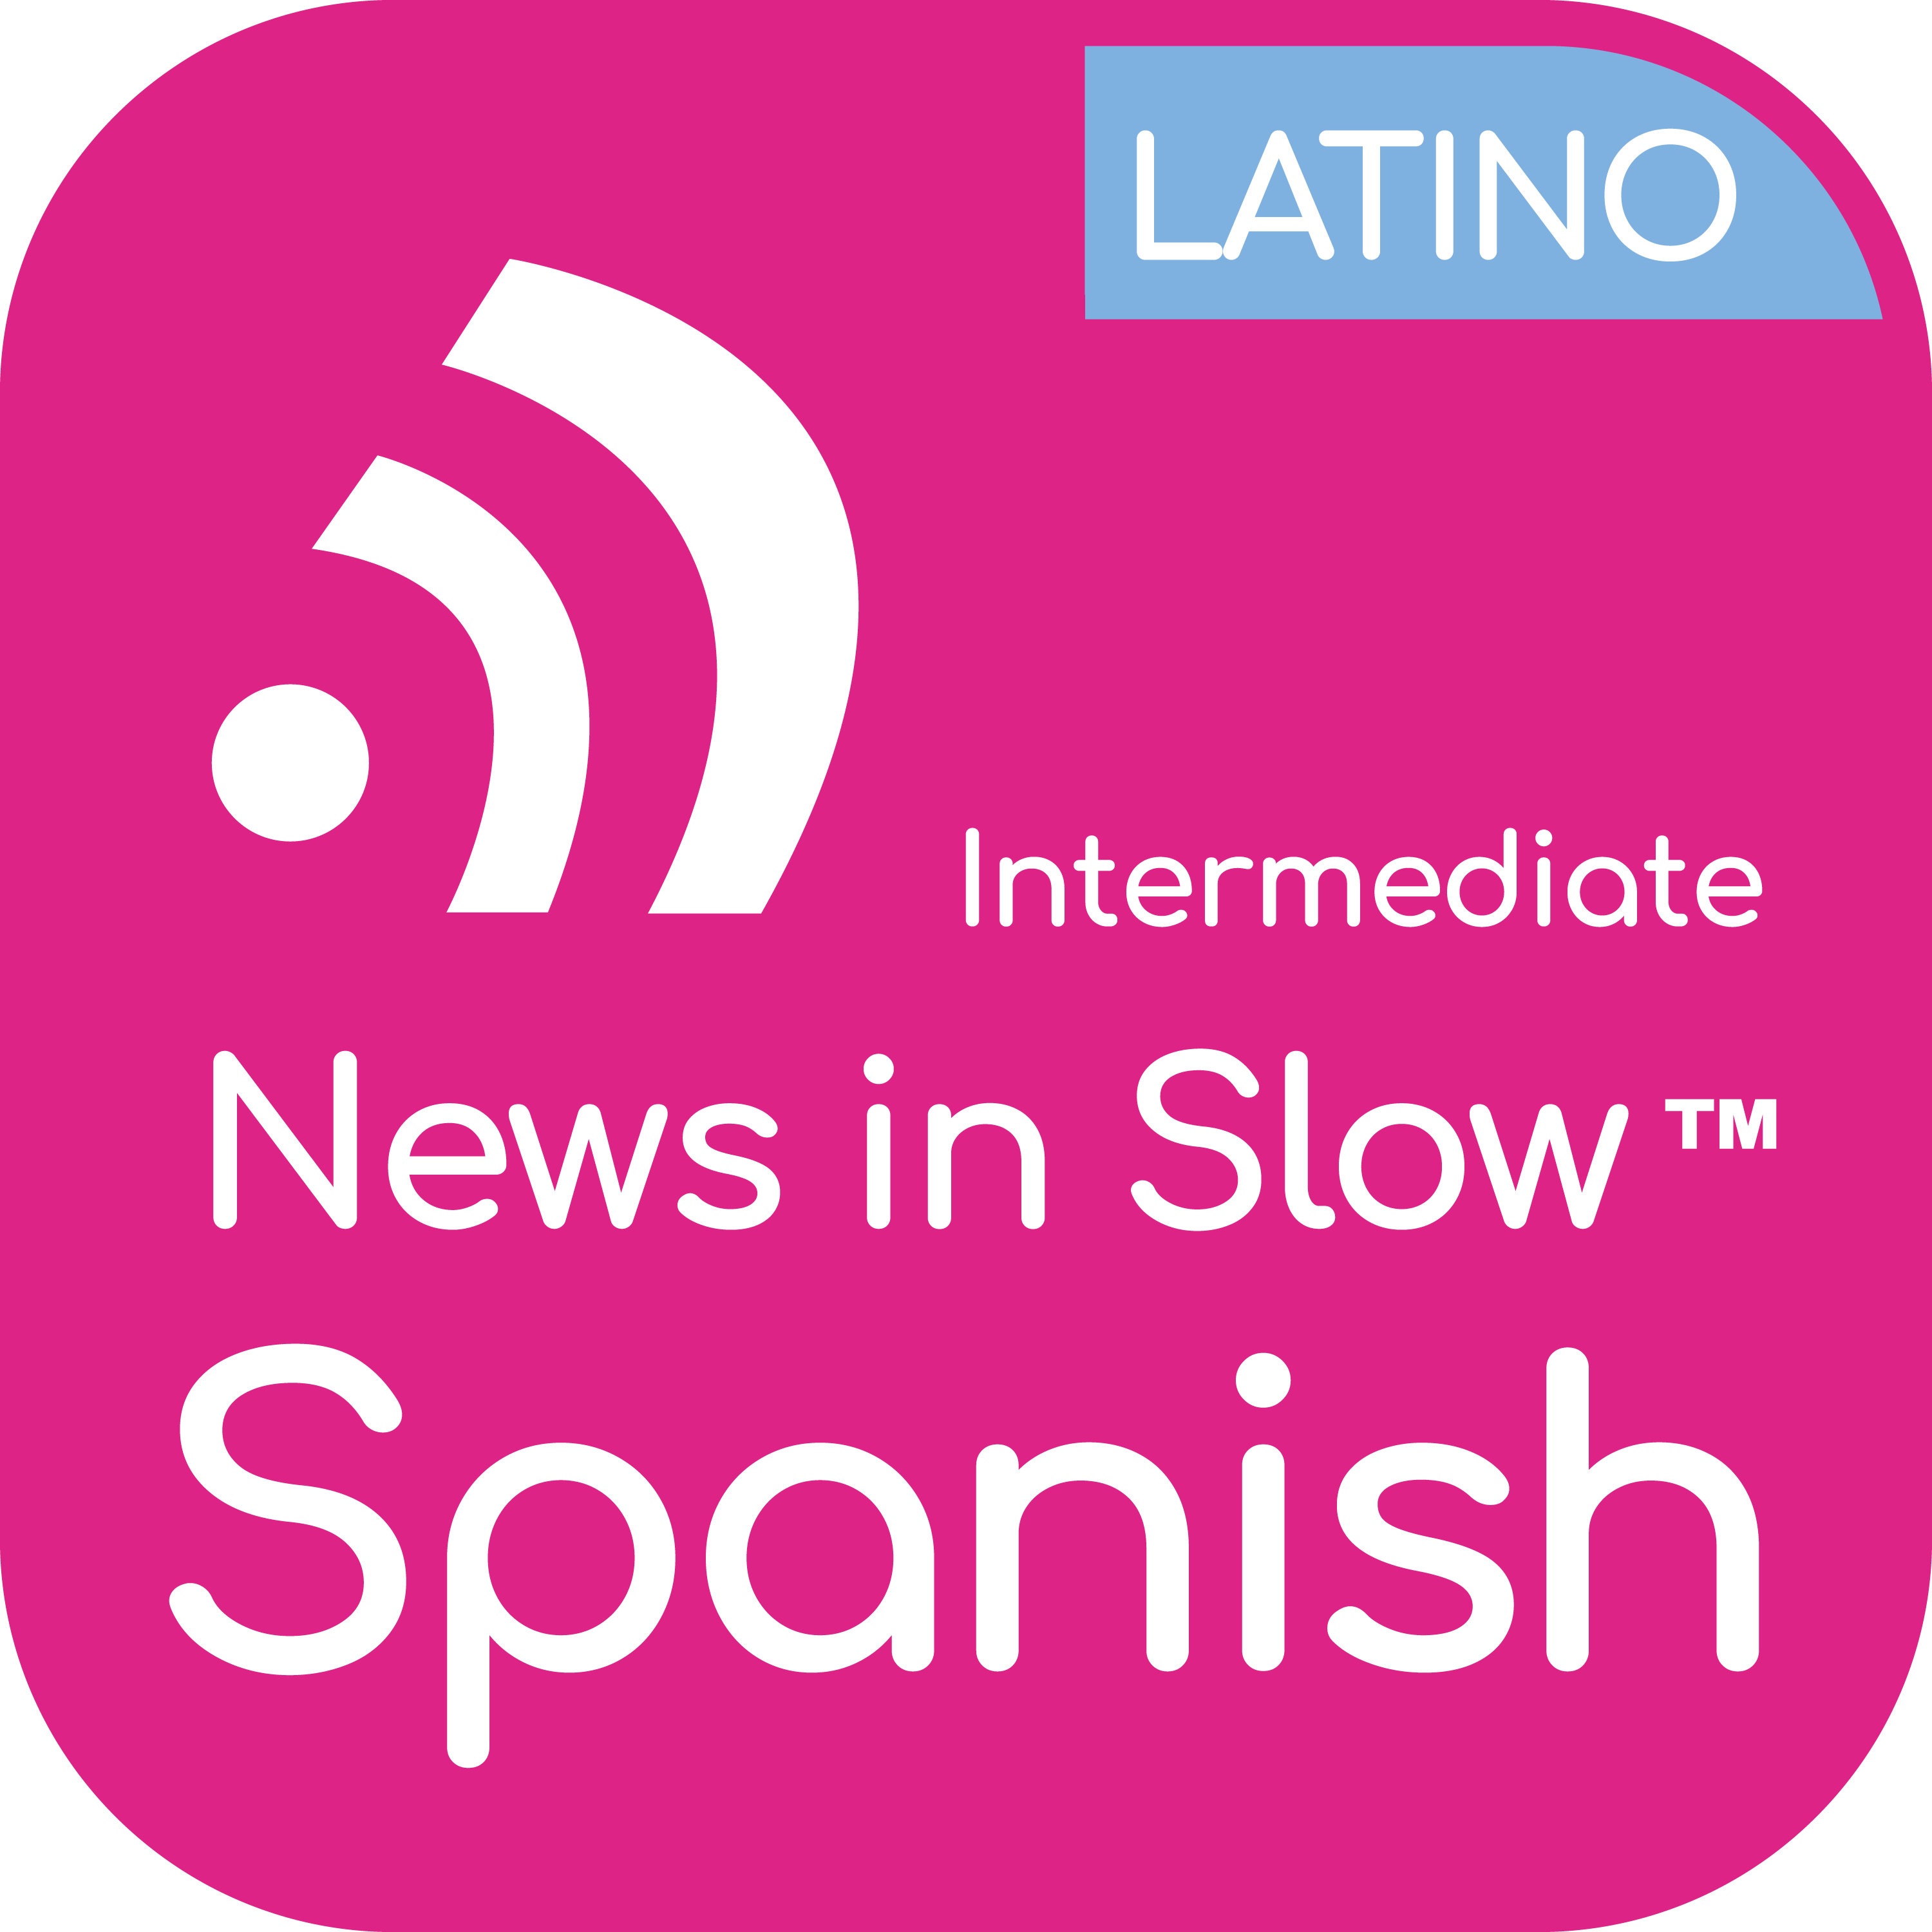 News In Slow Spanish Latino #386 - Spanish Expressions, News, and Grammar